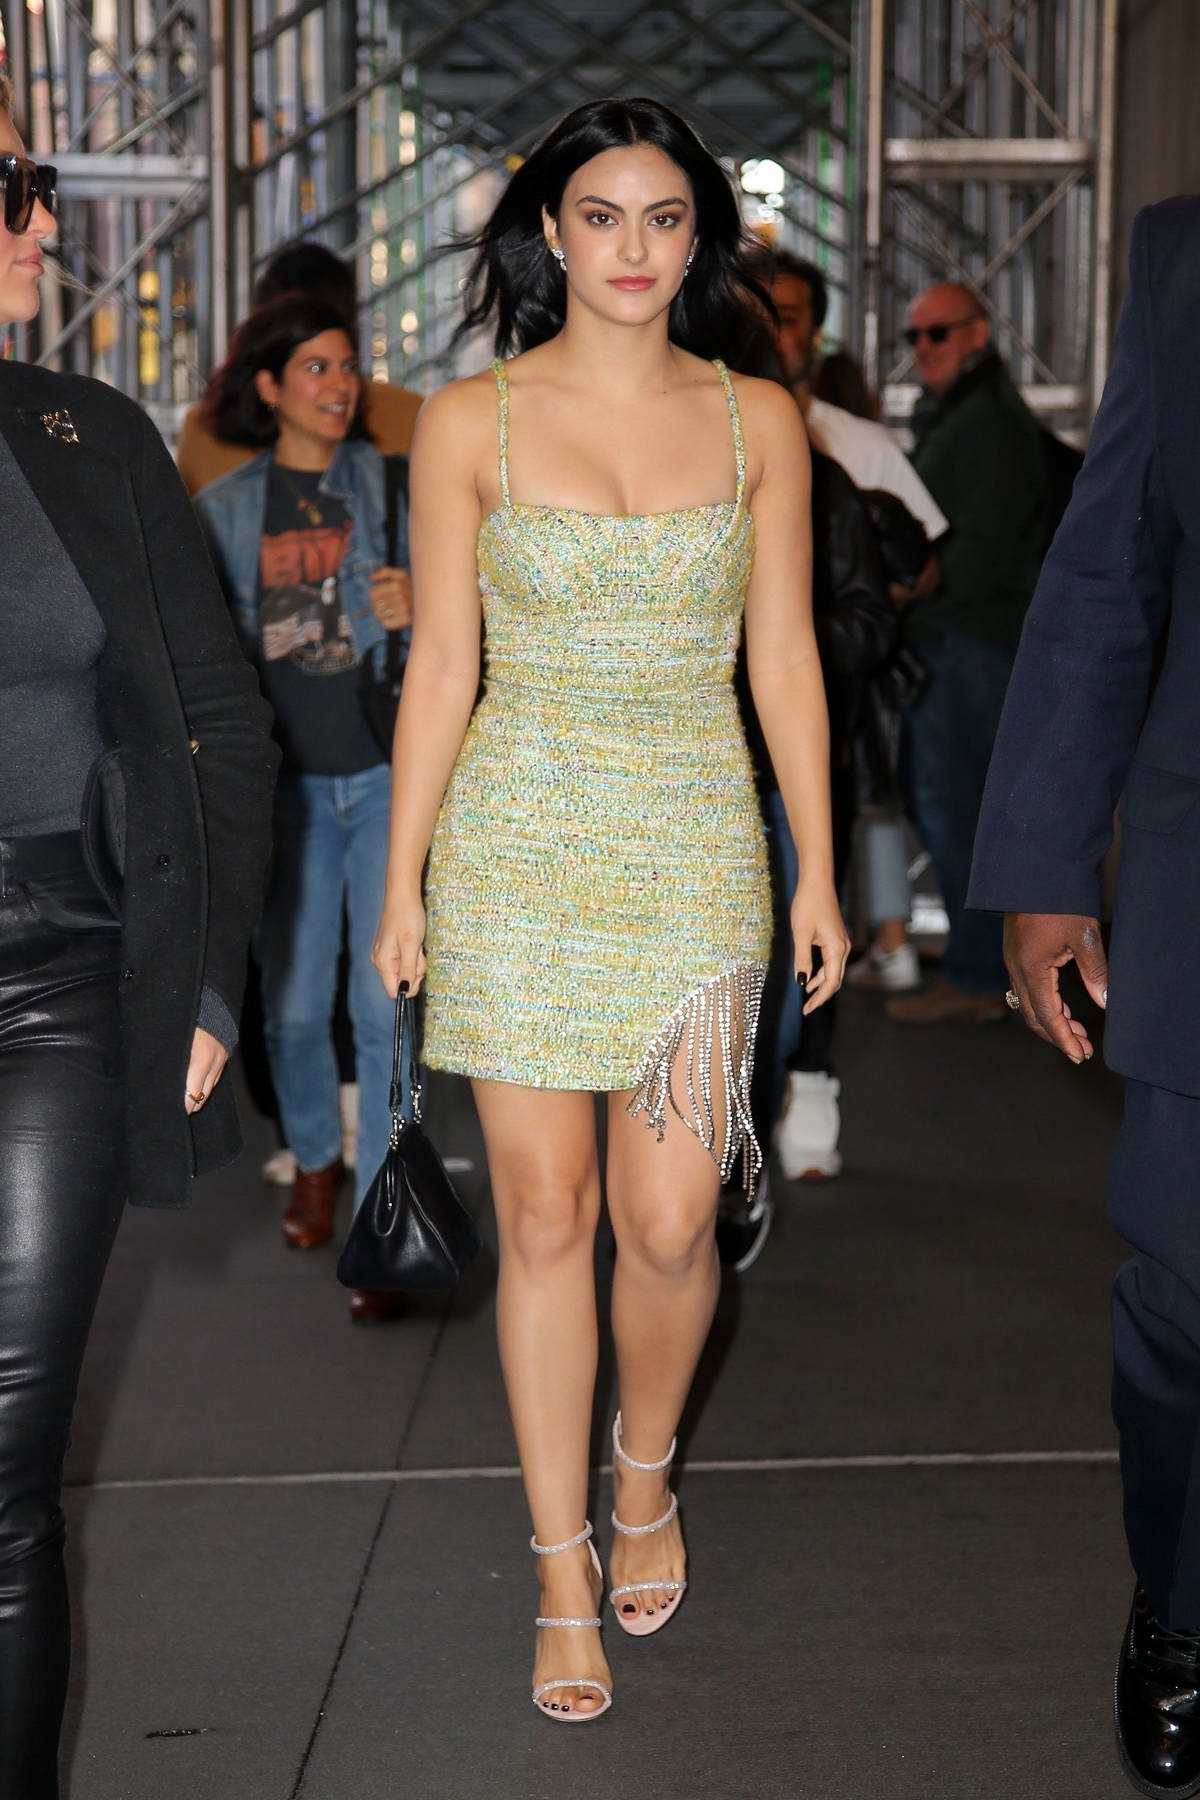 Camila Mendes looks gorgeous in a green mini dress while stepping out in New York City